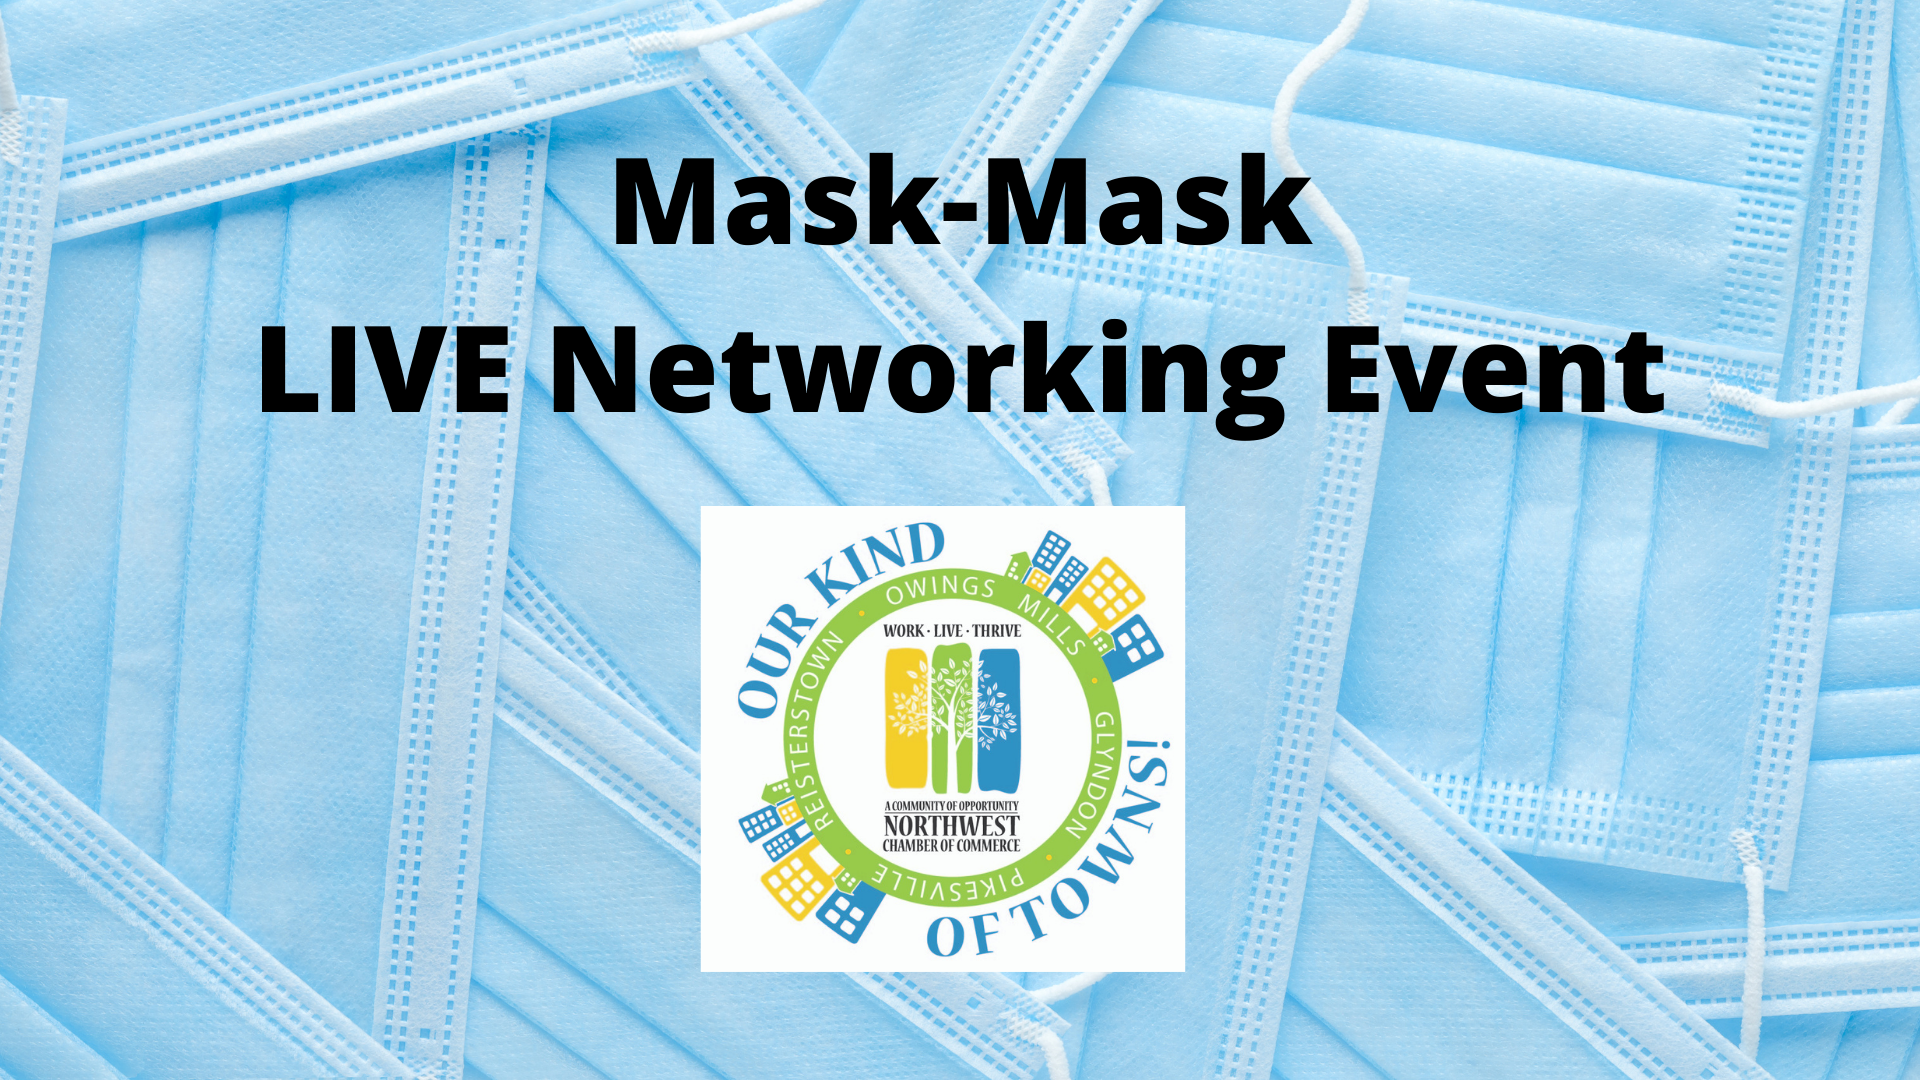 Mask-Mask LIVE Networking Event.png